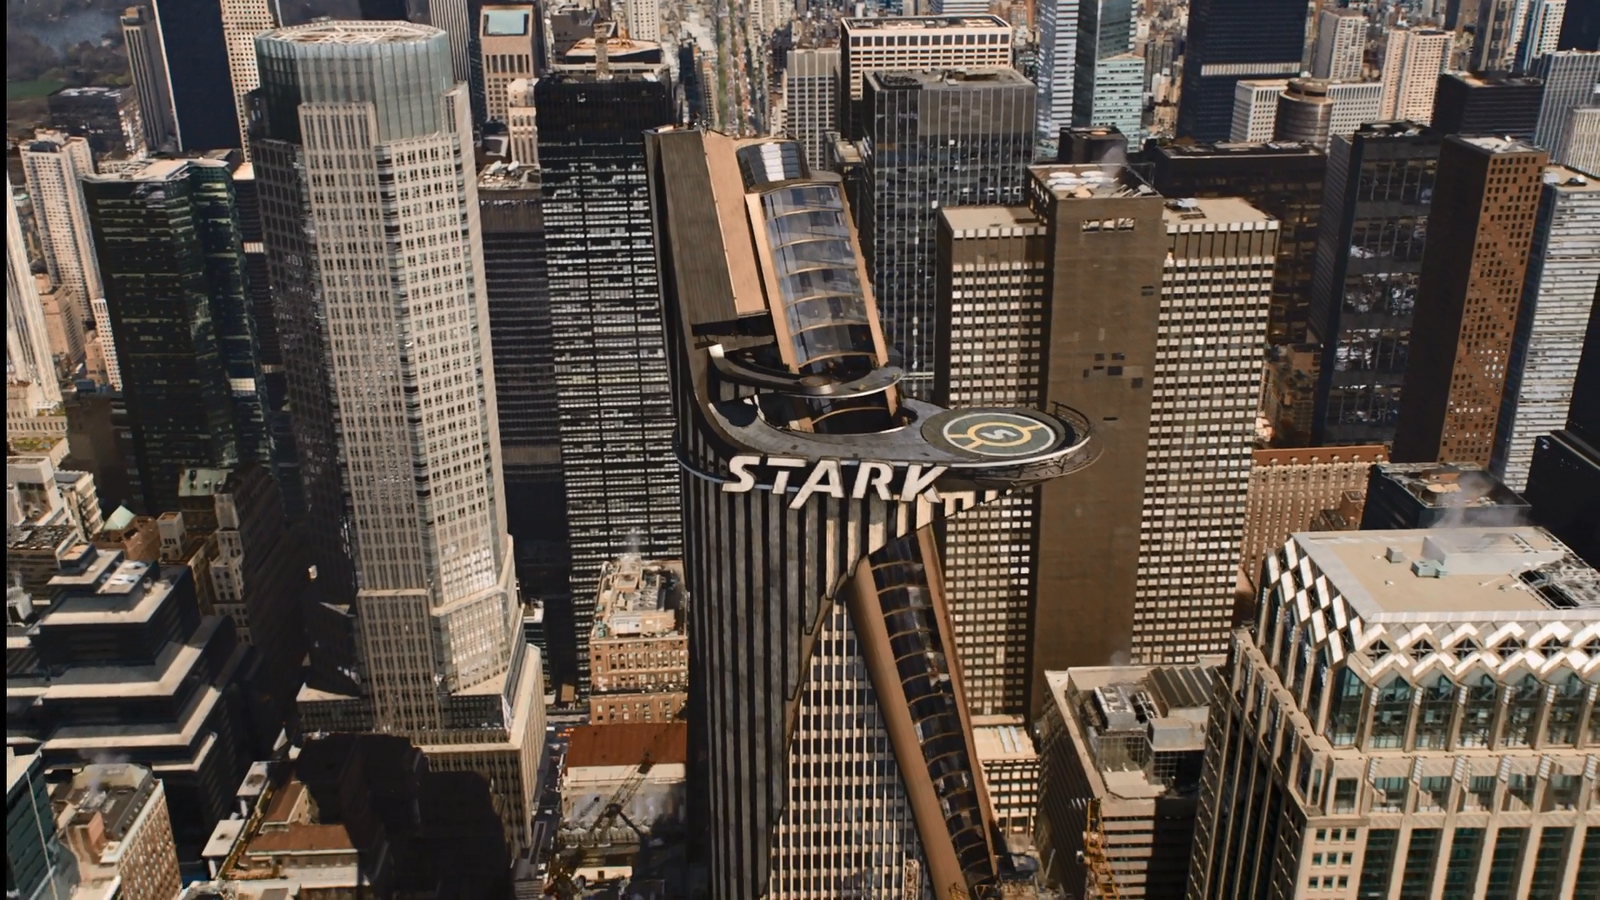 Architecture of Marvel Movies - Sheet10